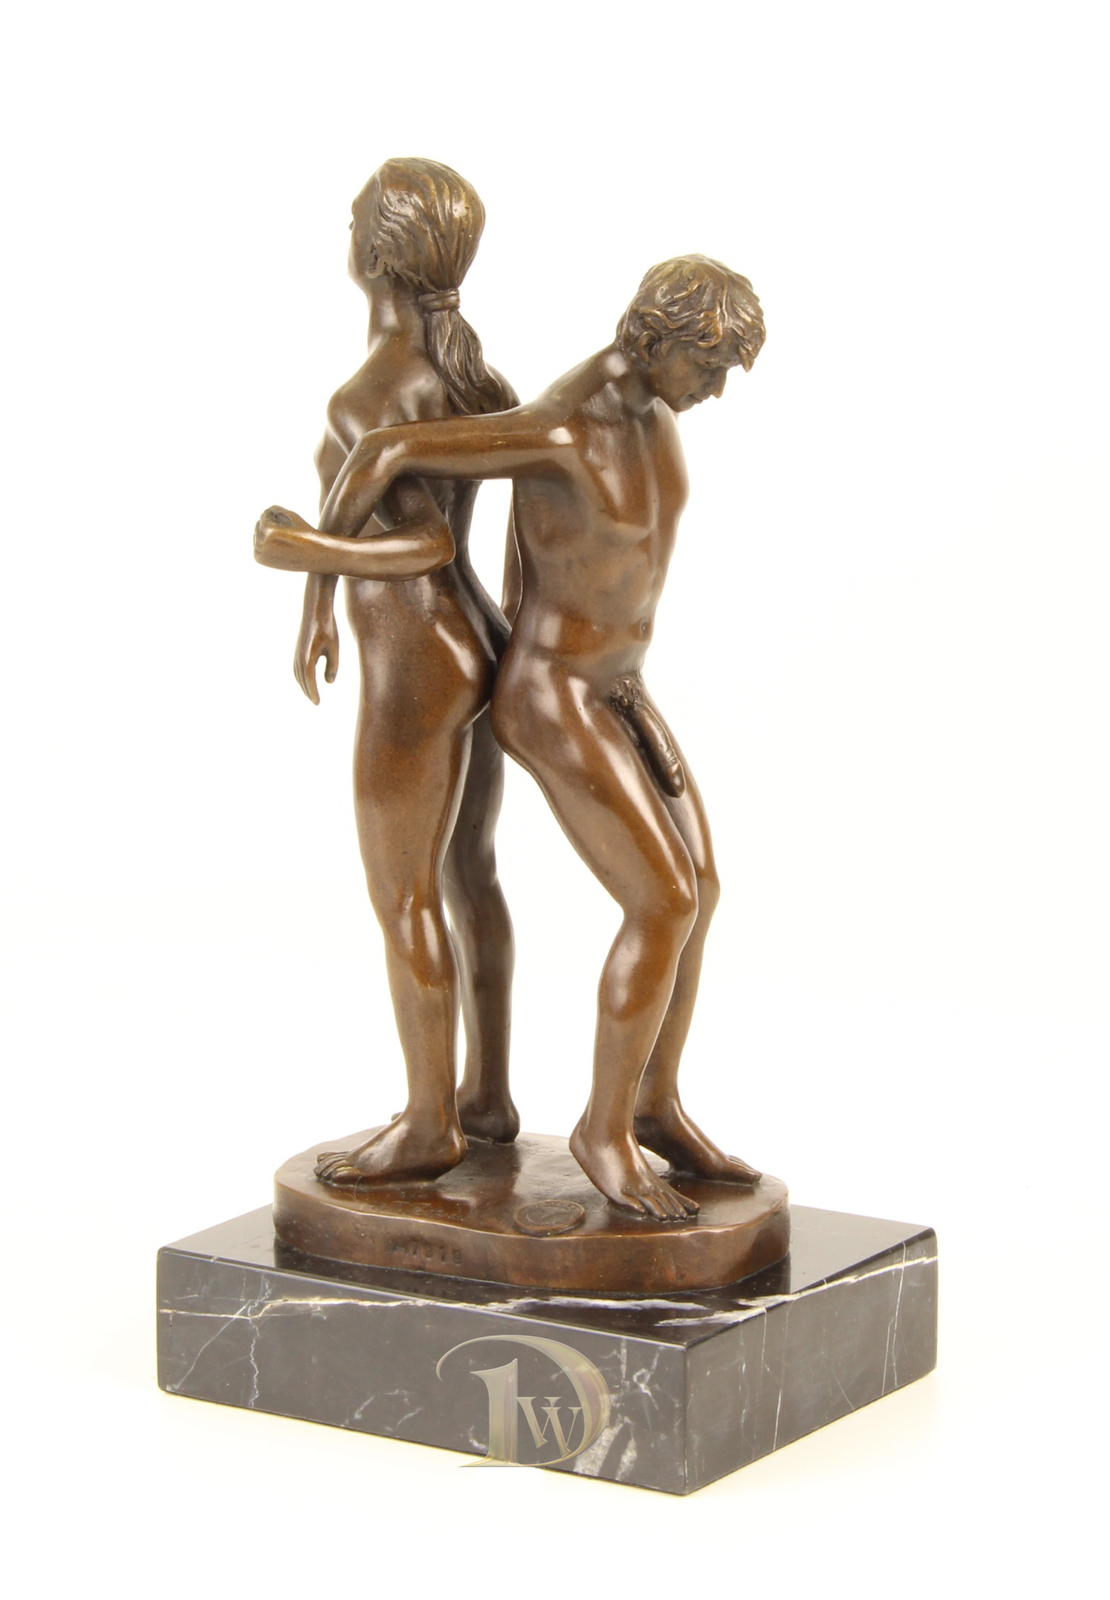 Antique Home Decor Bronze Sculpture shows Naked Men Lovers, signed * Free Air